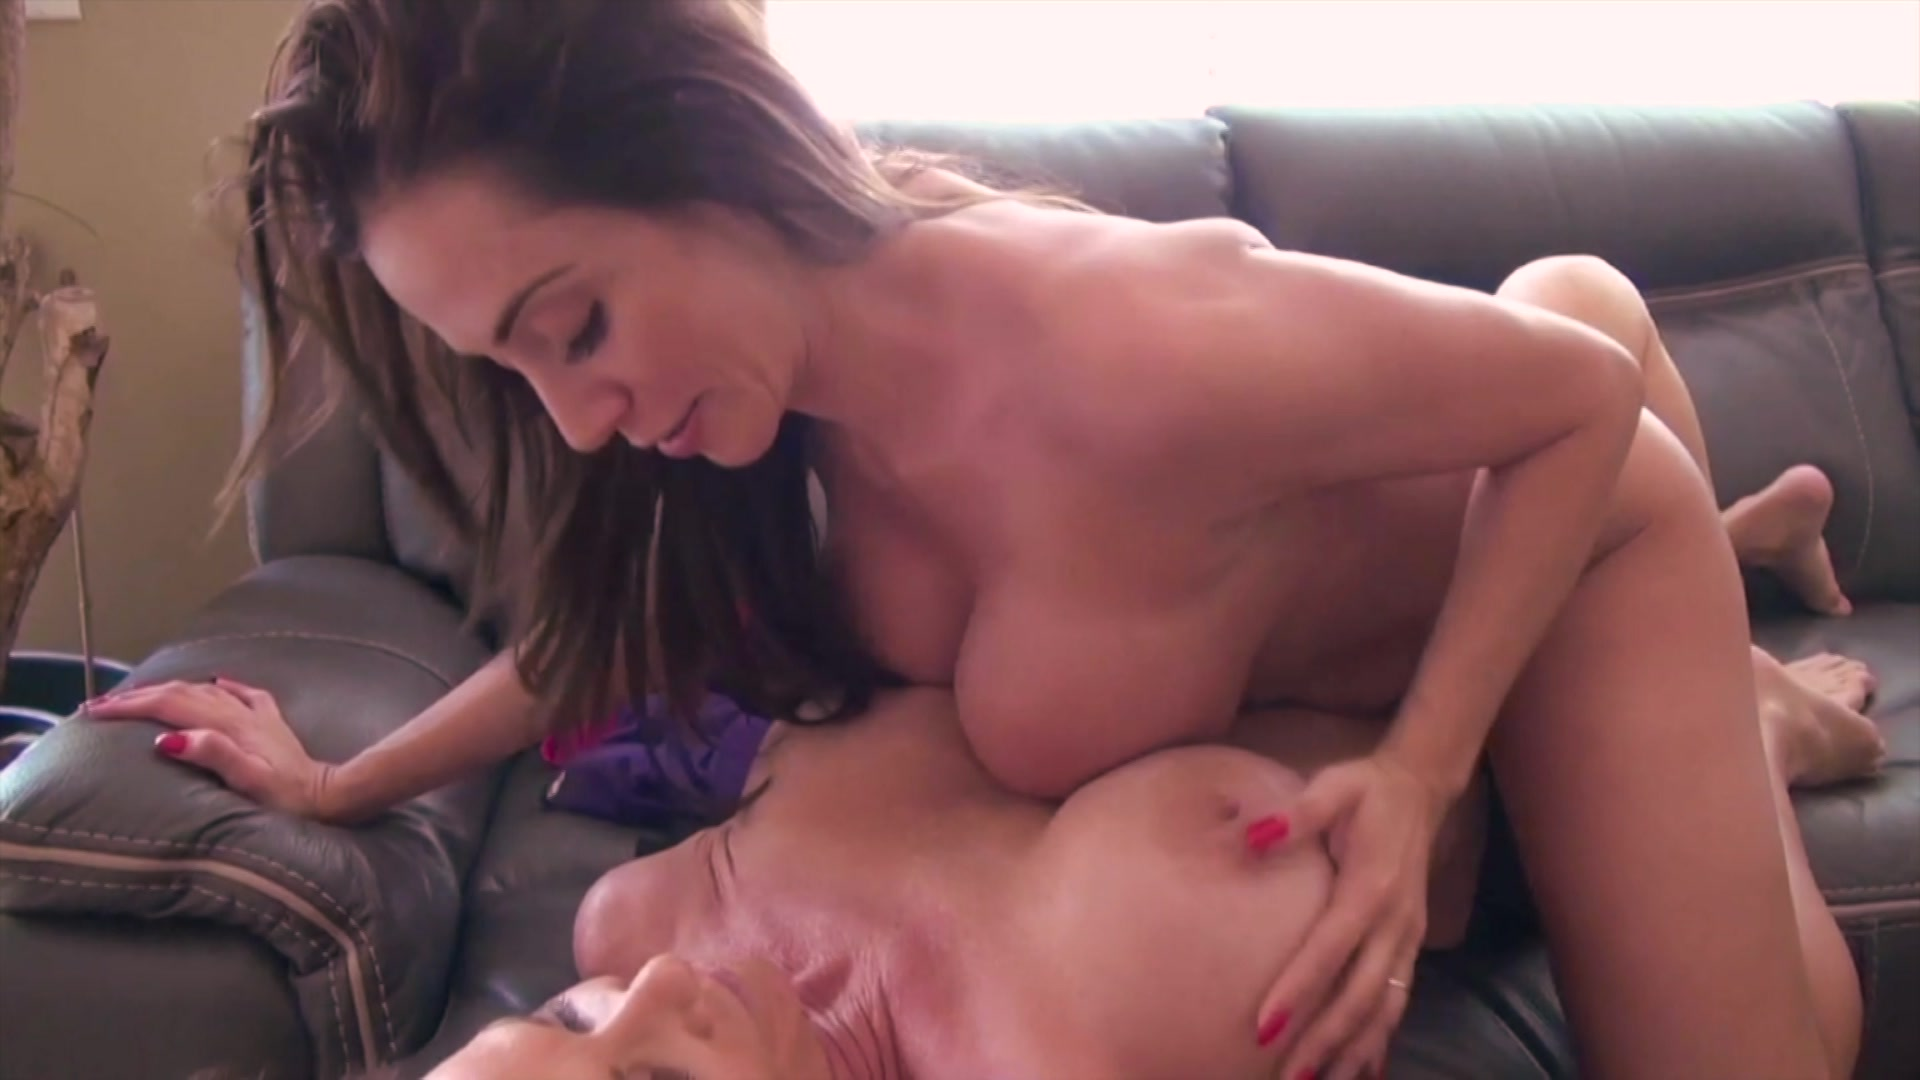 CHRIS: Horny milf jolene swallowing a cock